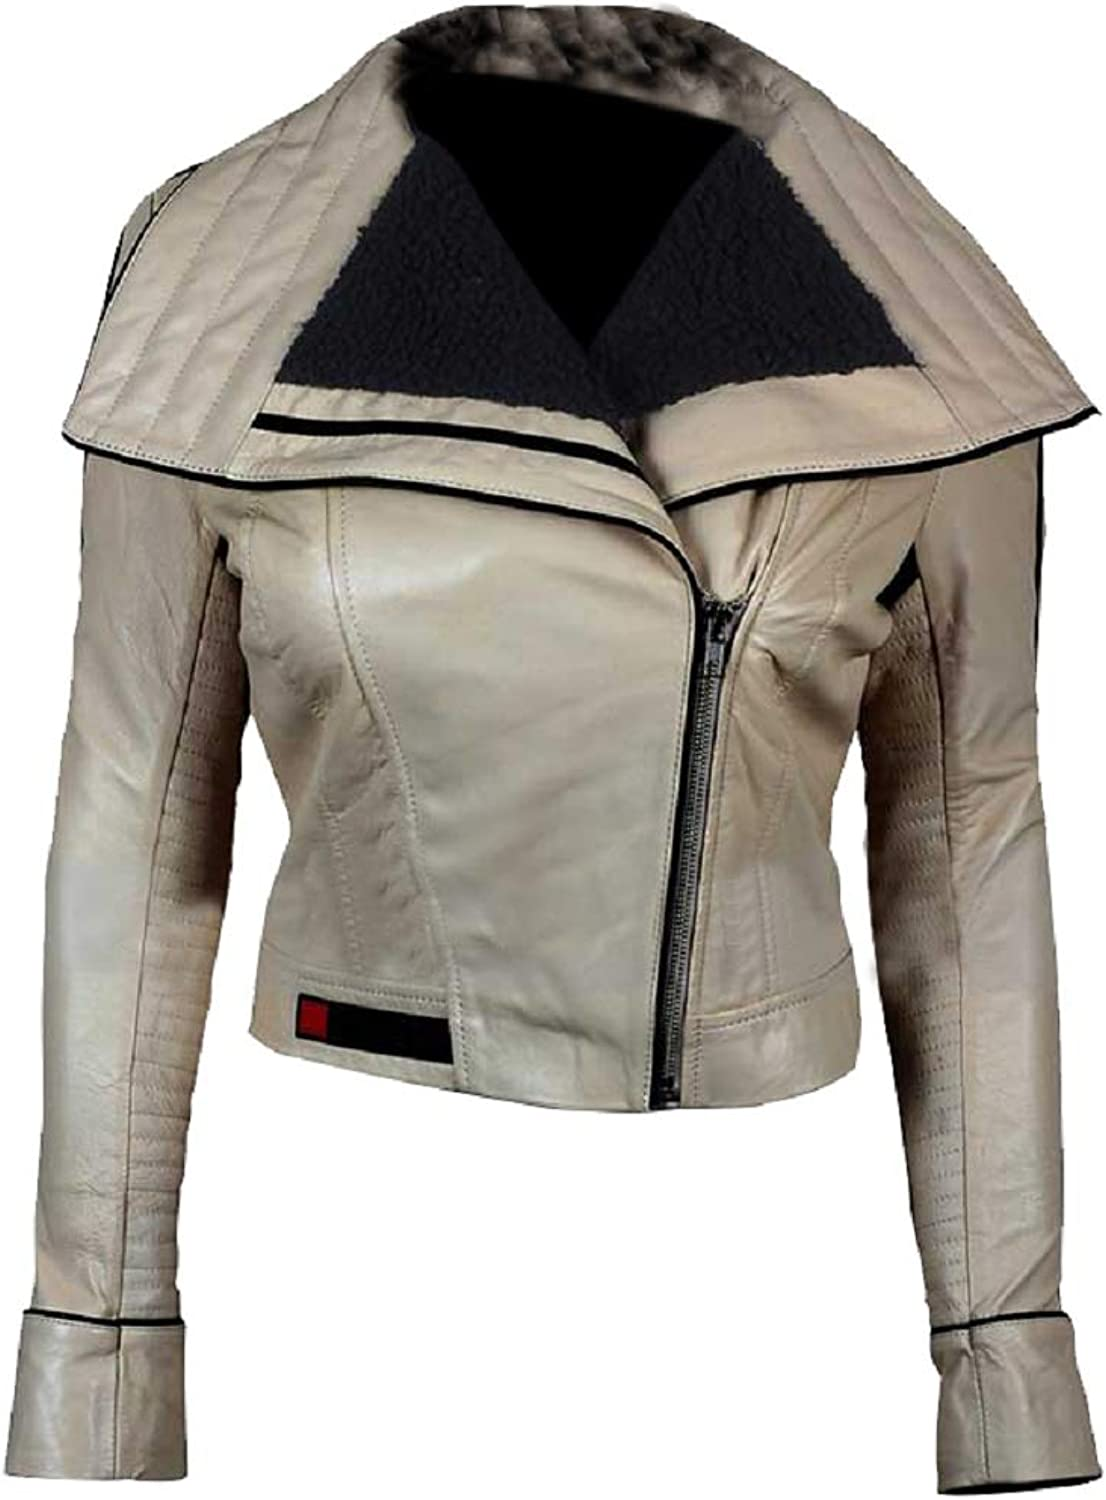 Erha Accessories Solo A Star Wars Story Qira Emilia Clarke Ivory White Real Sheepskin Leather Jacket